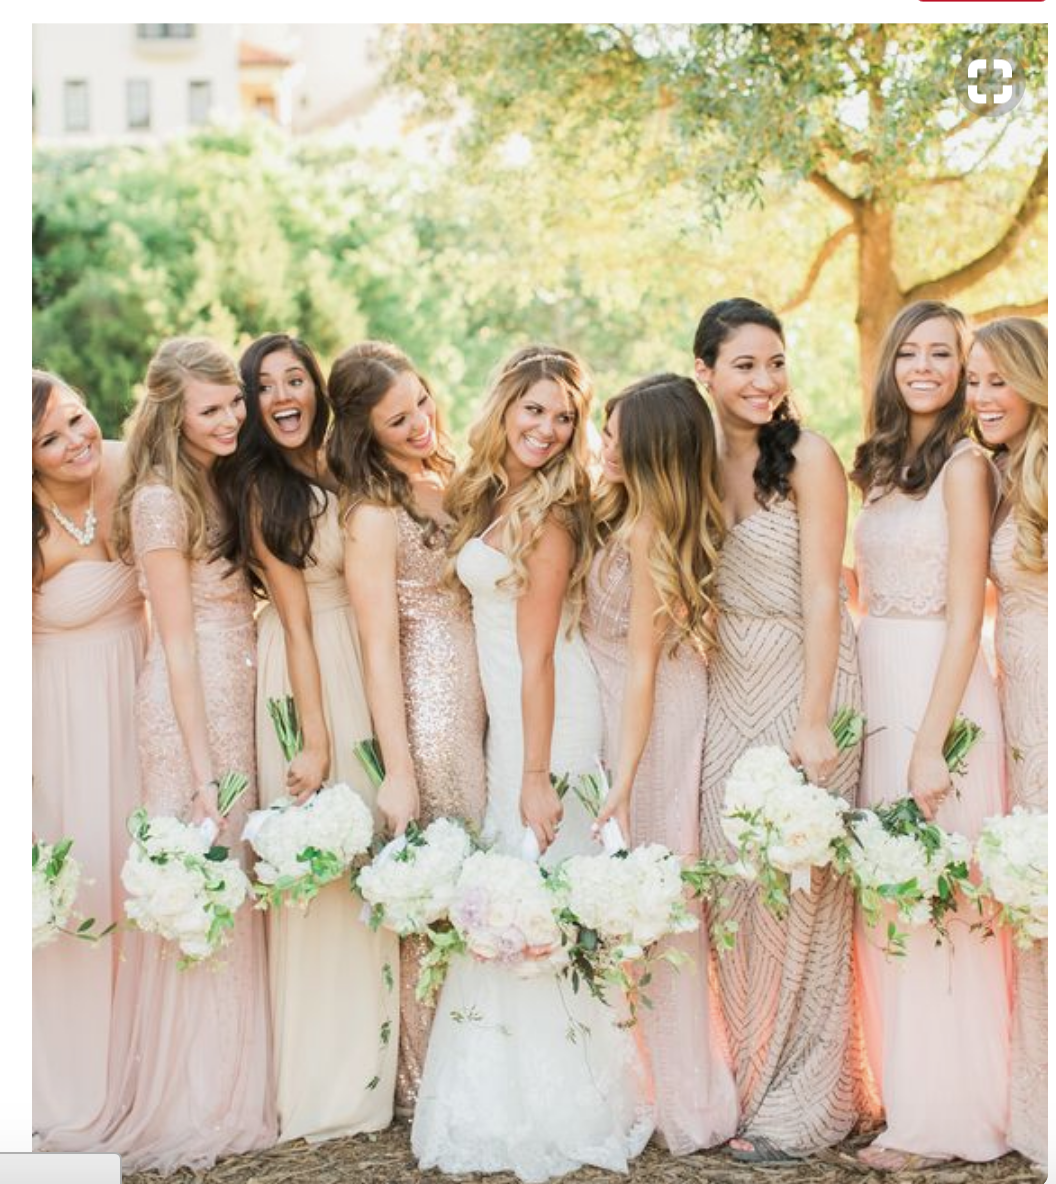 Cheap Wedding Dresses Austin: Pin By Lissa Jackson On #LiloAndHitched In 2019